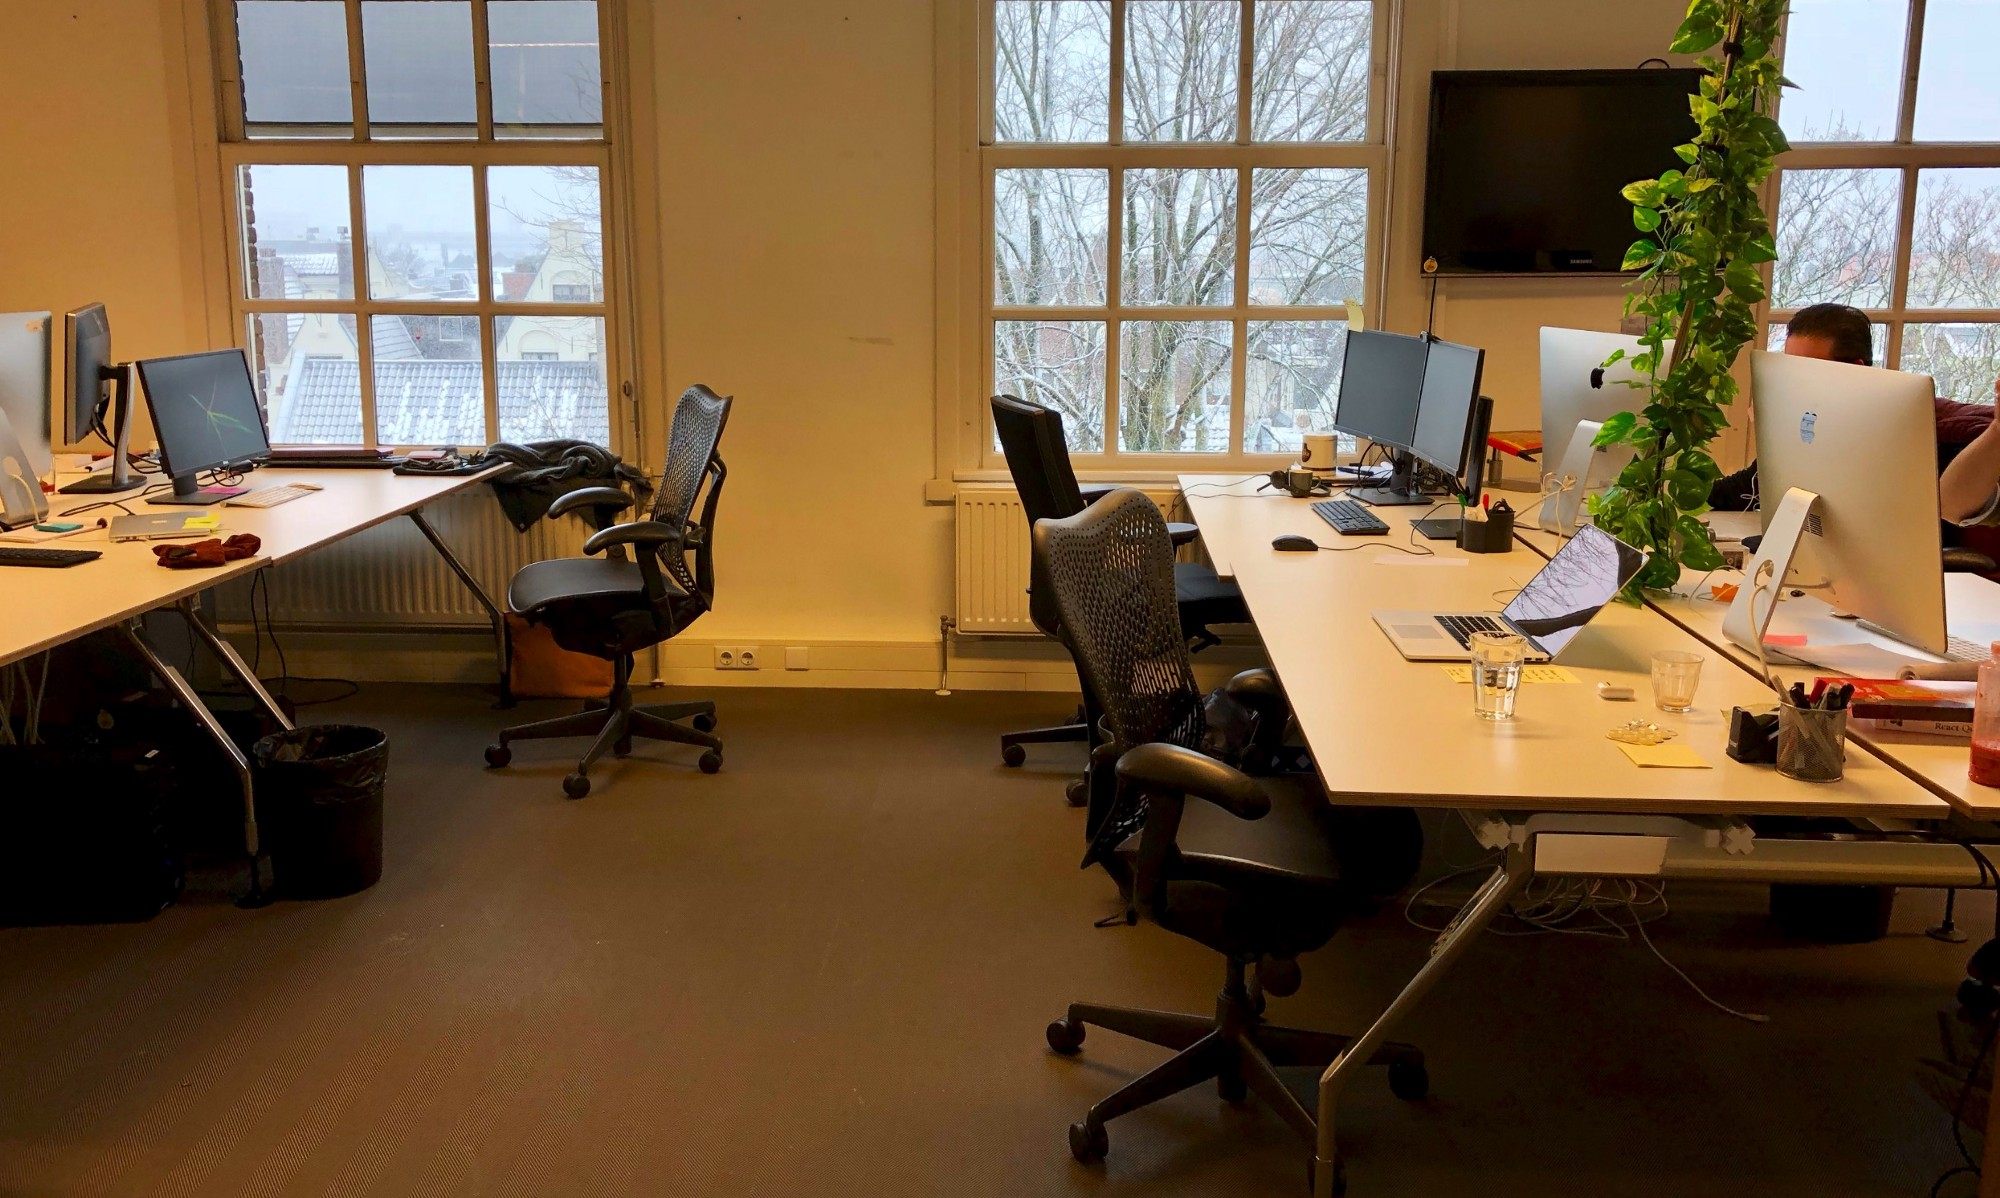 Four empty desks in an office building during winter